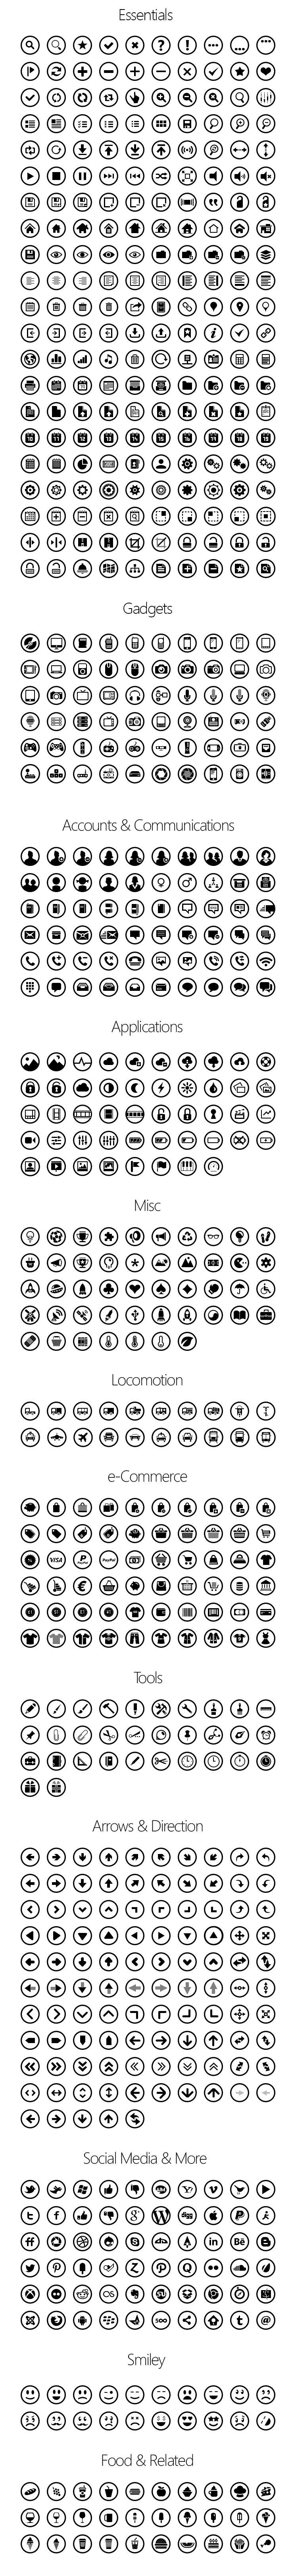 Metricons Pro - Icons for Windows 8 and Windows Phones